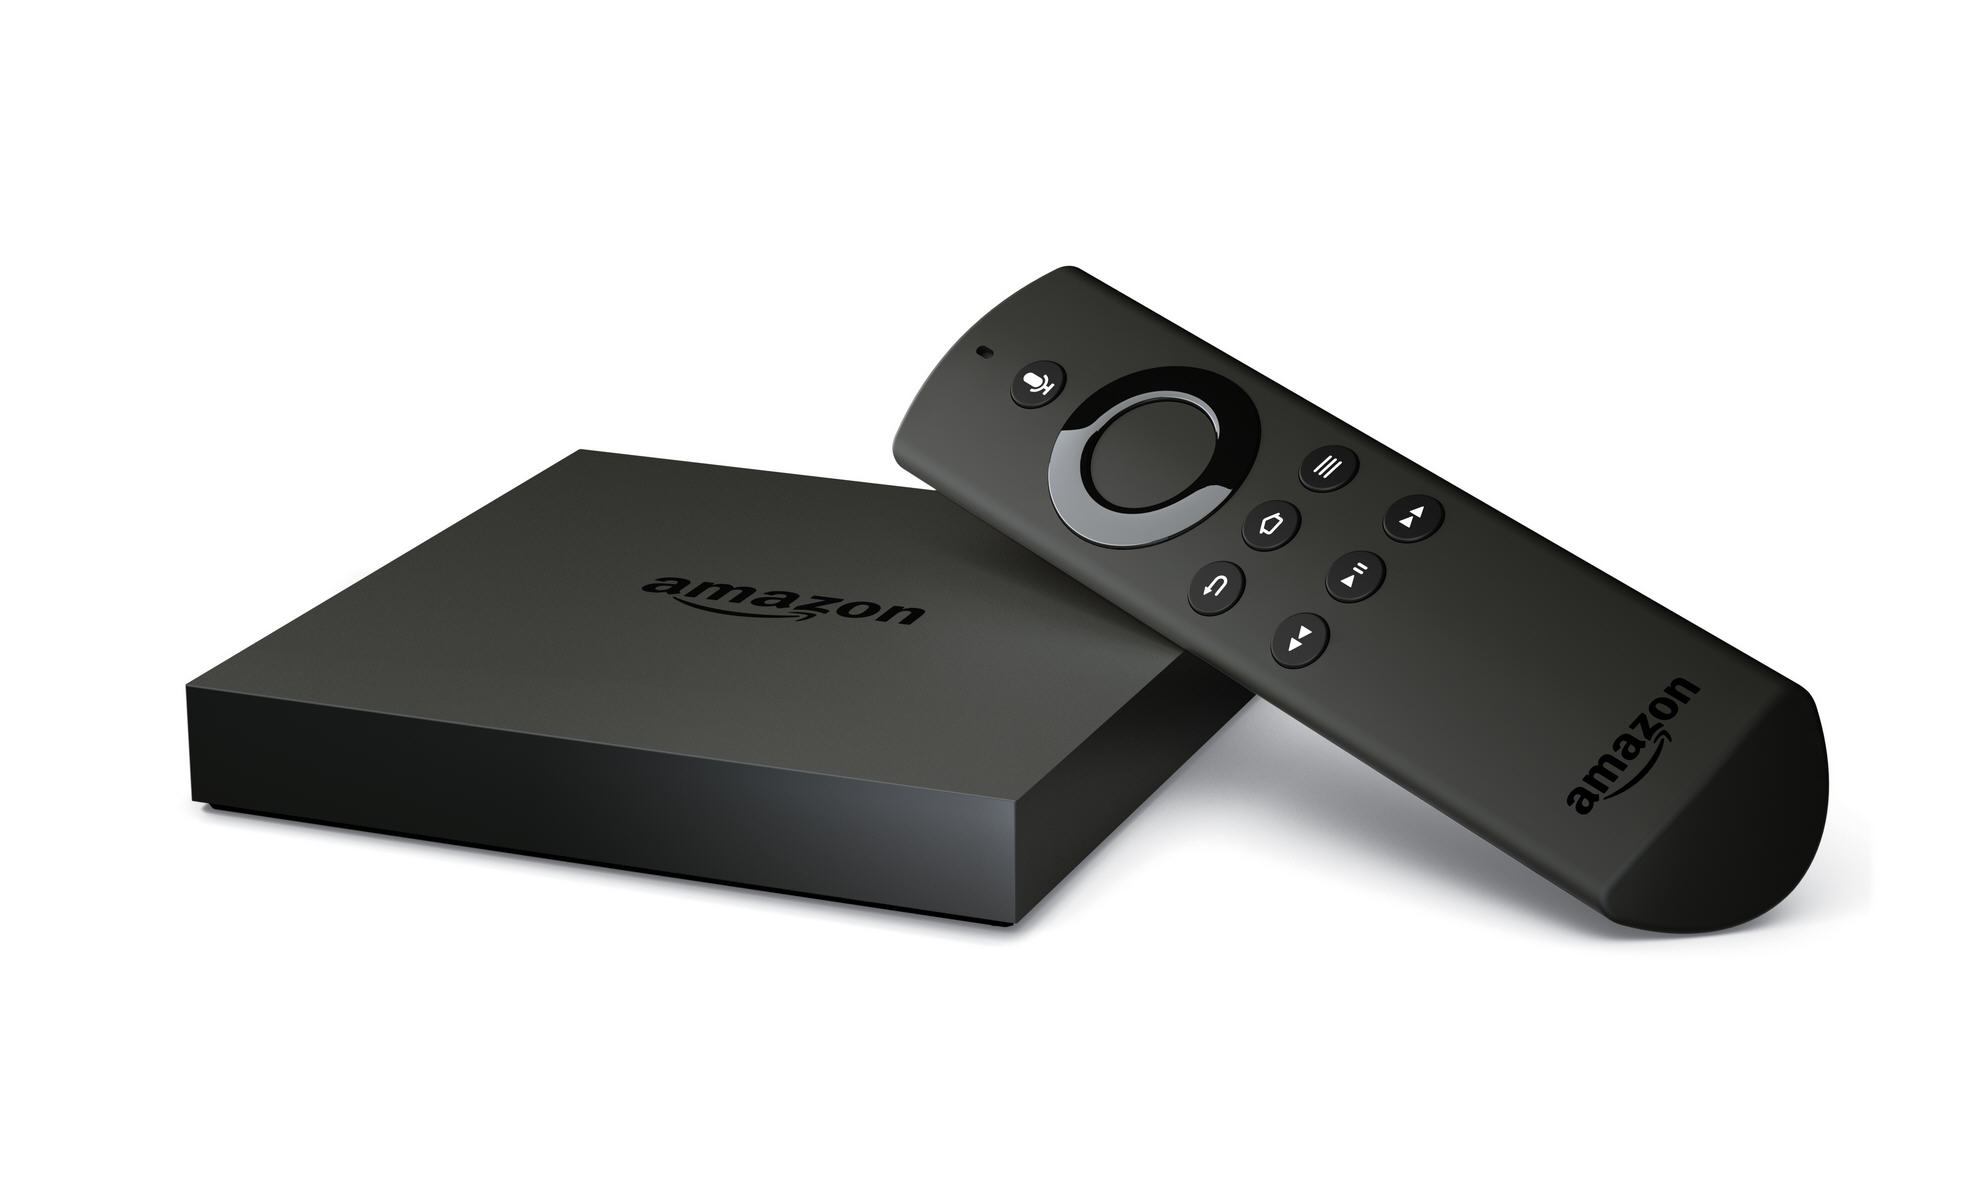 Amazon TV and Fire stick